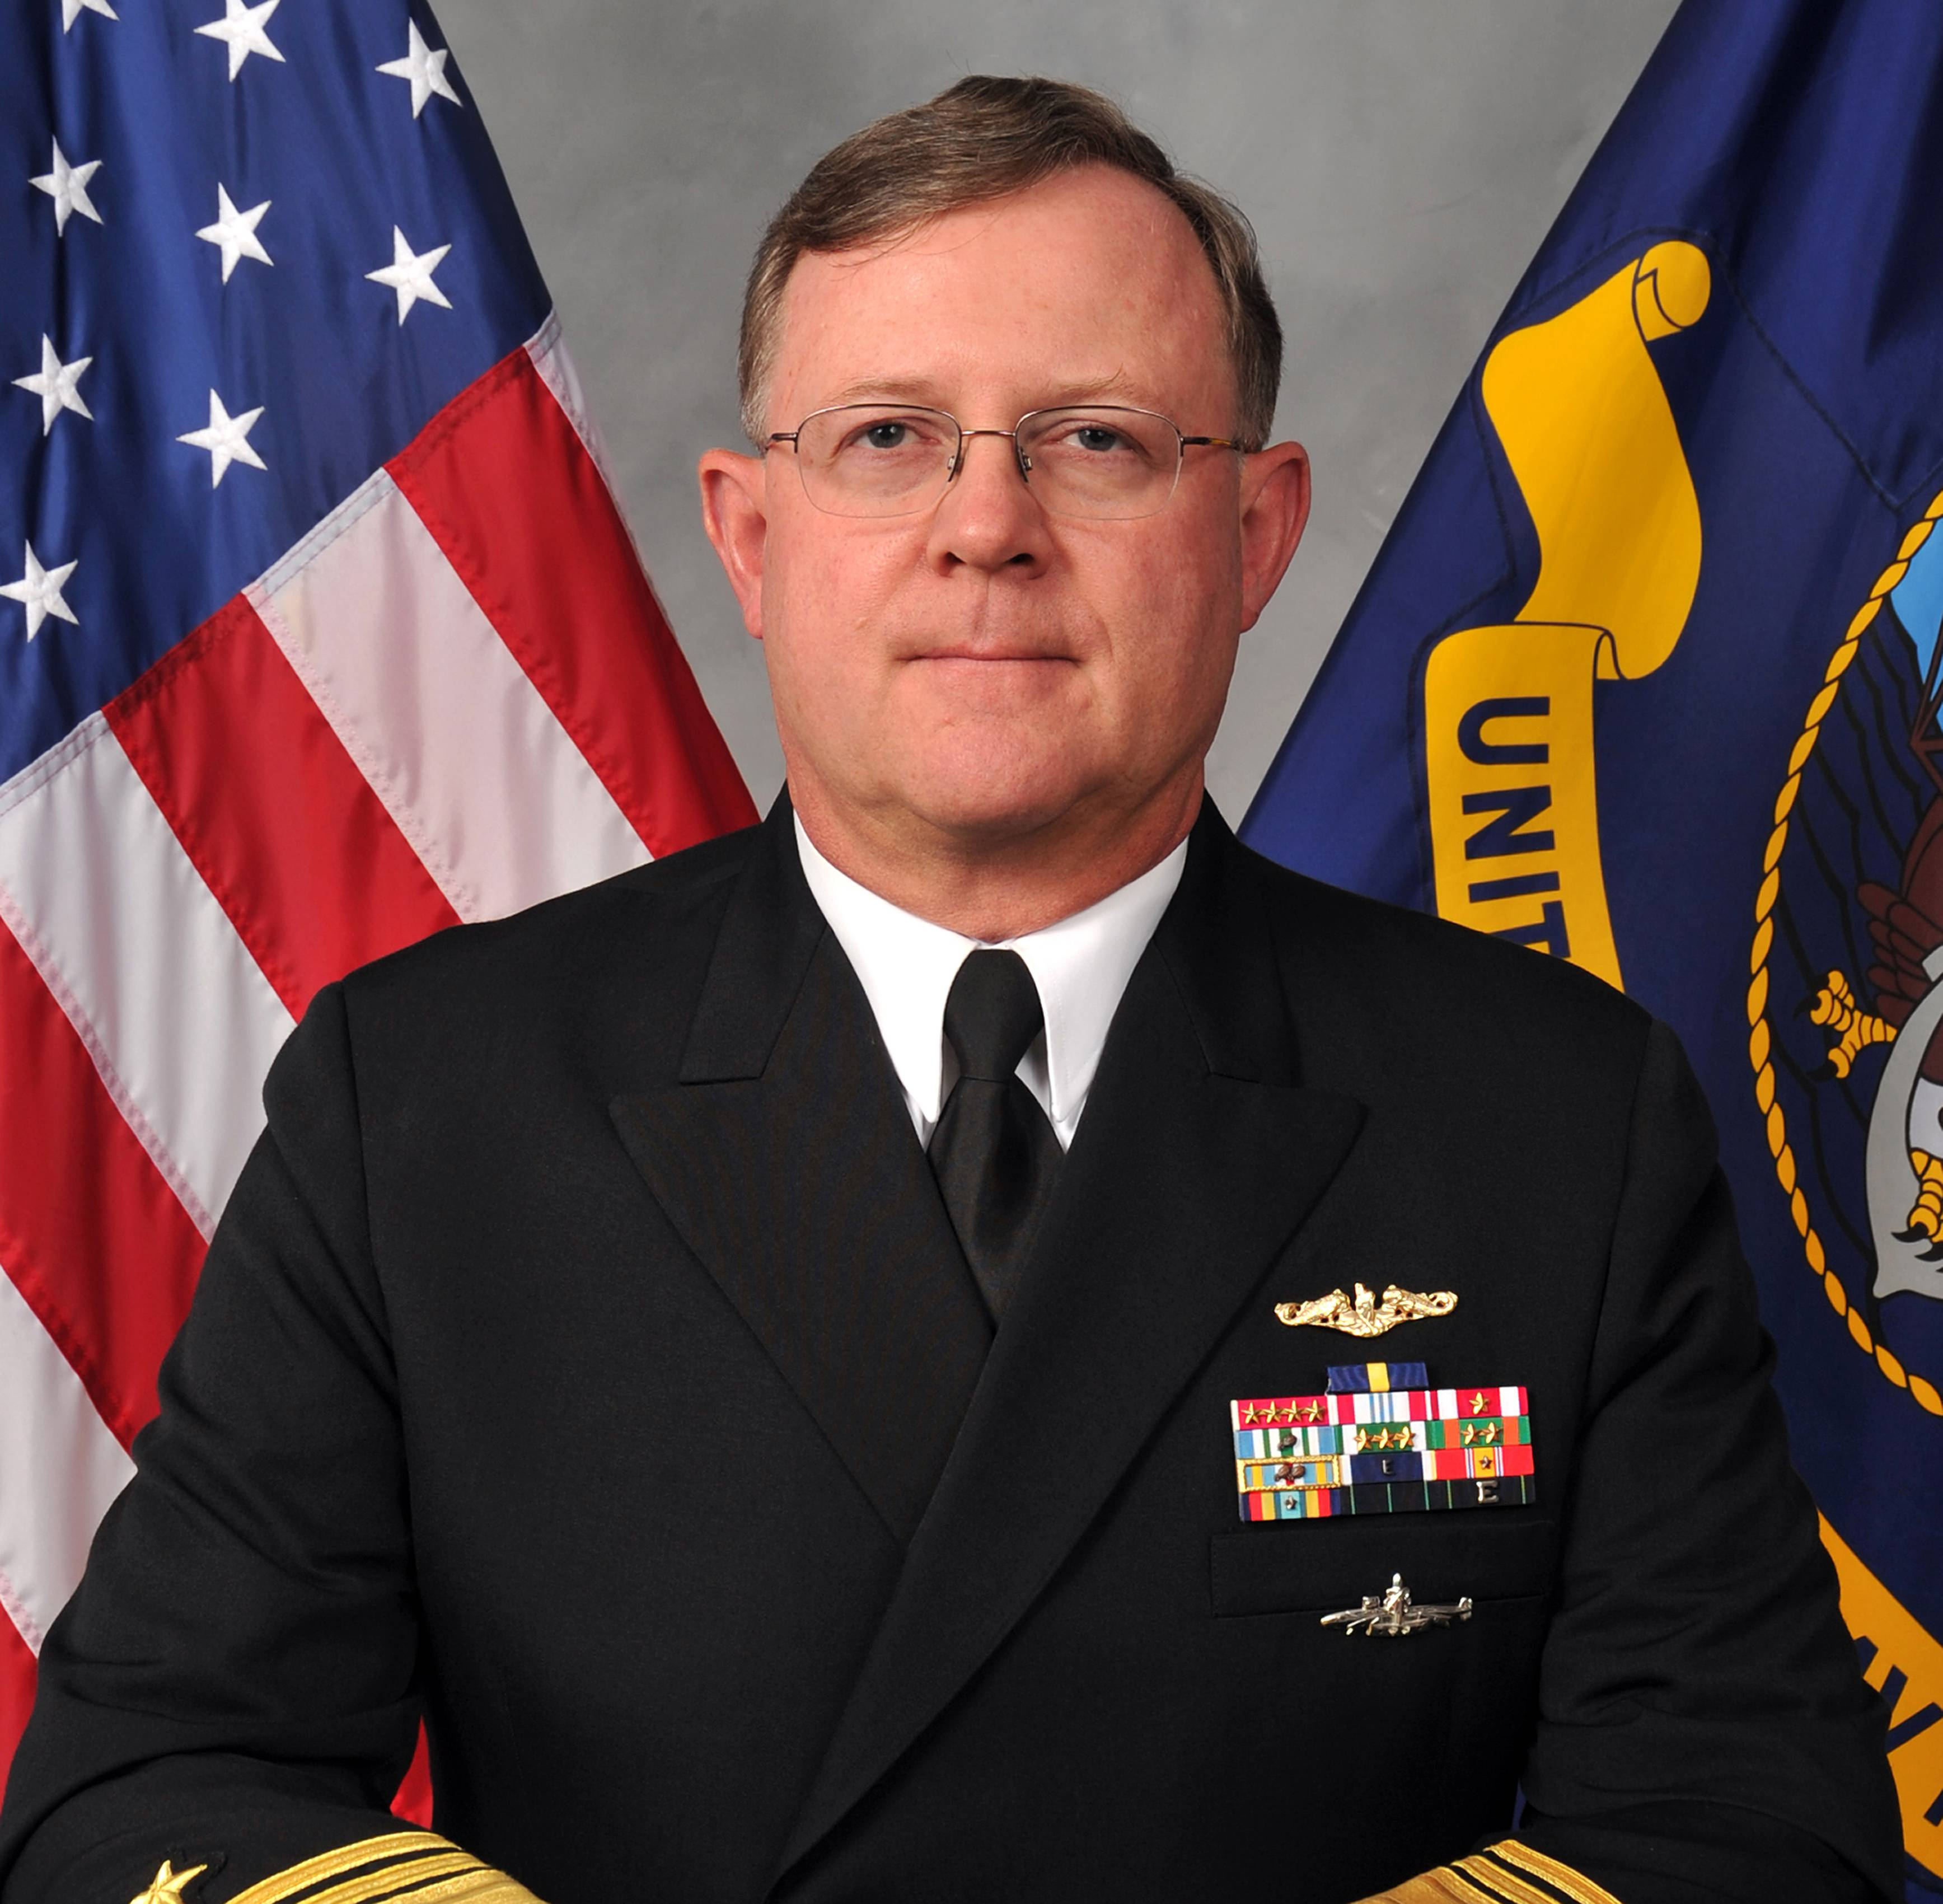 Navy Vice Adm. Tim Giardina in a Nov. 11, 2011, photo. Giardina, fired last year as No. 2 commander of U.S. nuclear forces, may have made his own counterfeit $500 poker chips with paint and stickers to feed a gambling habit that eventually saw him banned from an entire network of casinos, according to a criminal investigative report.